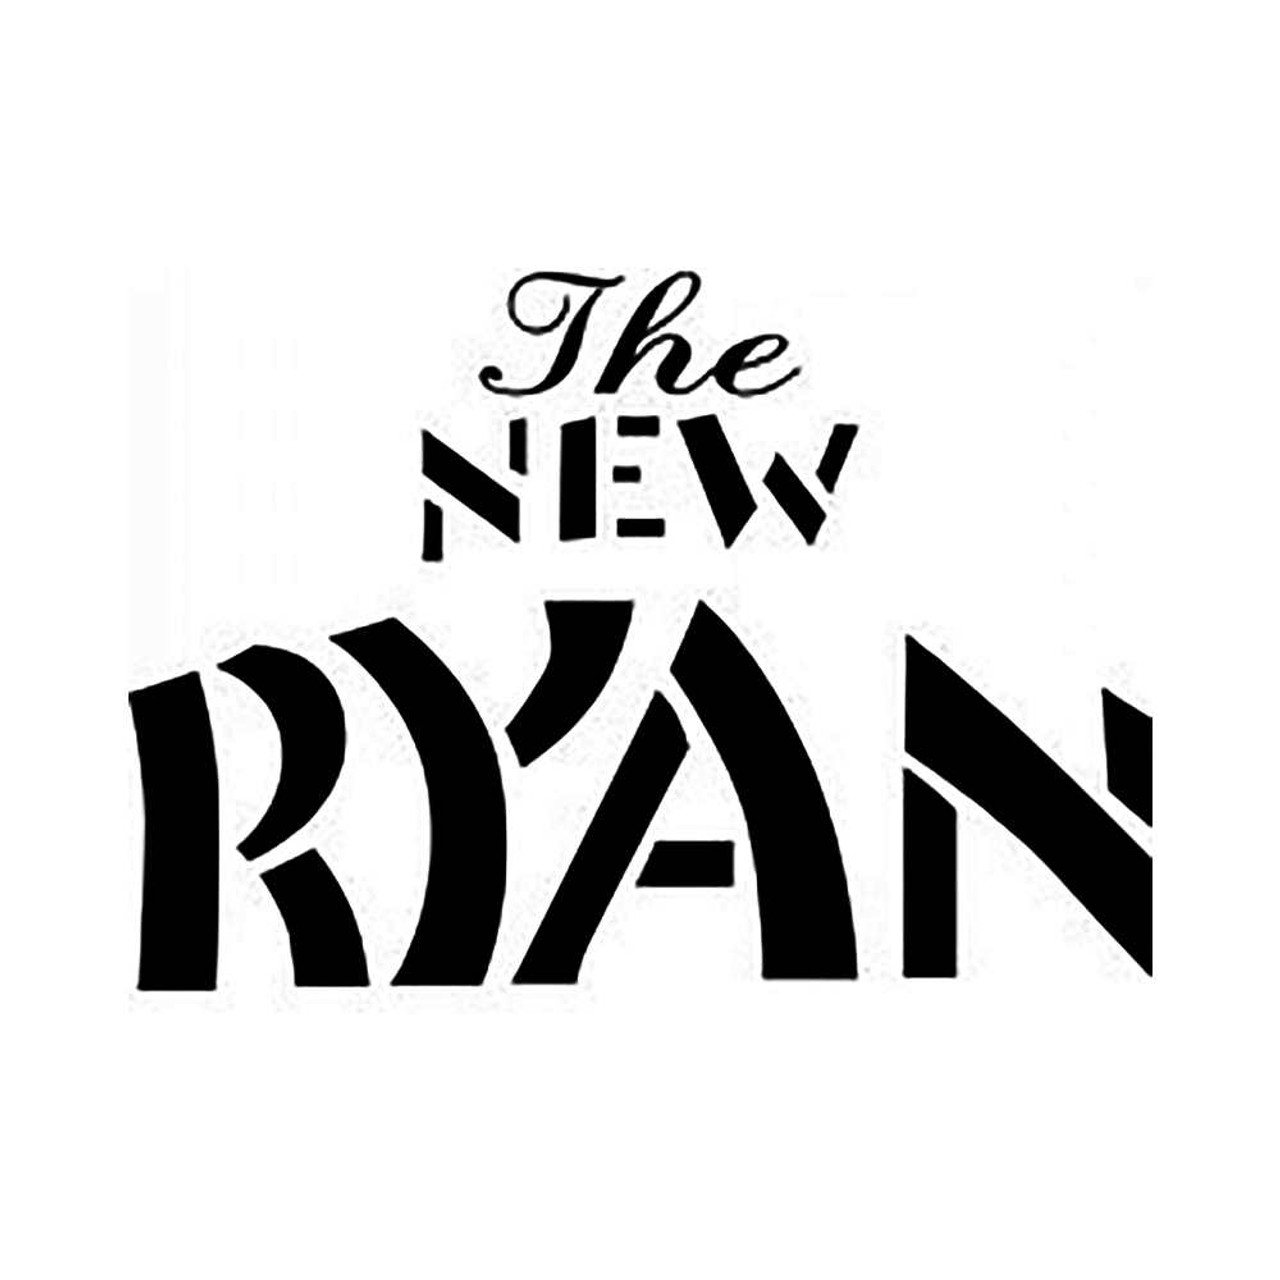 The new ryan aircraft logo vinyl graphics decal sticker vinyl decal graphic